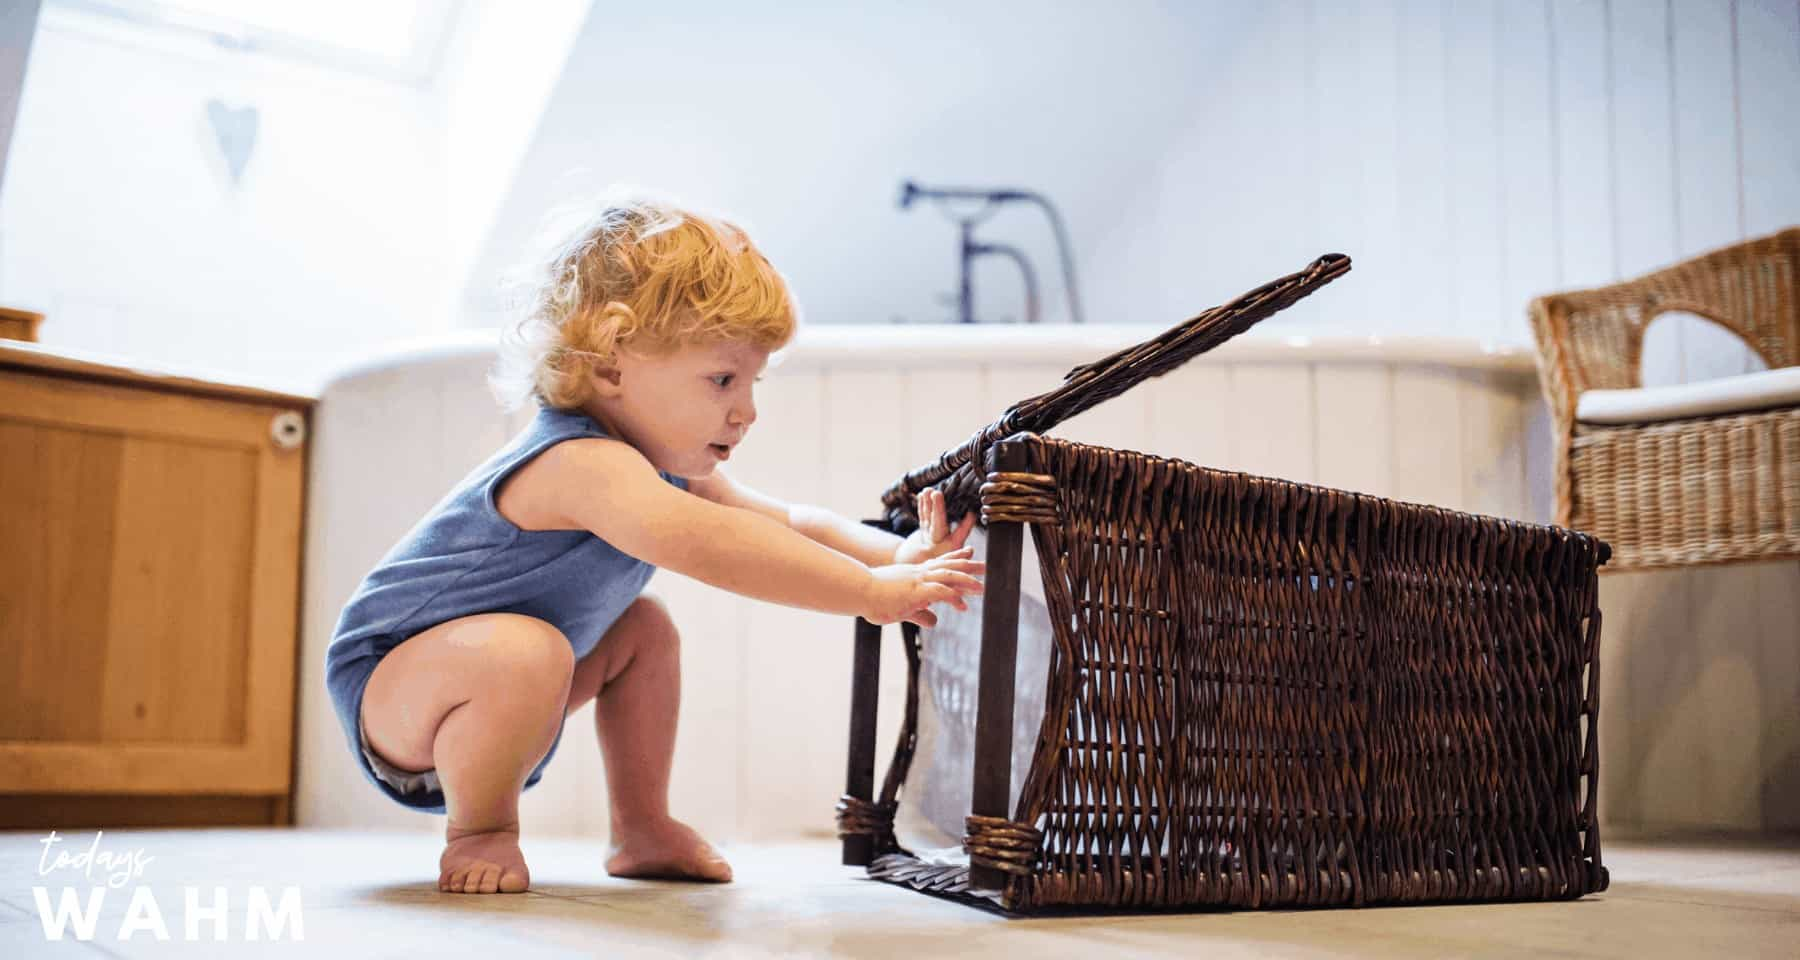 7 Ways To Make Your Home A Safer Environment for Toddlers